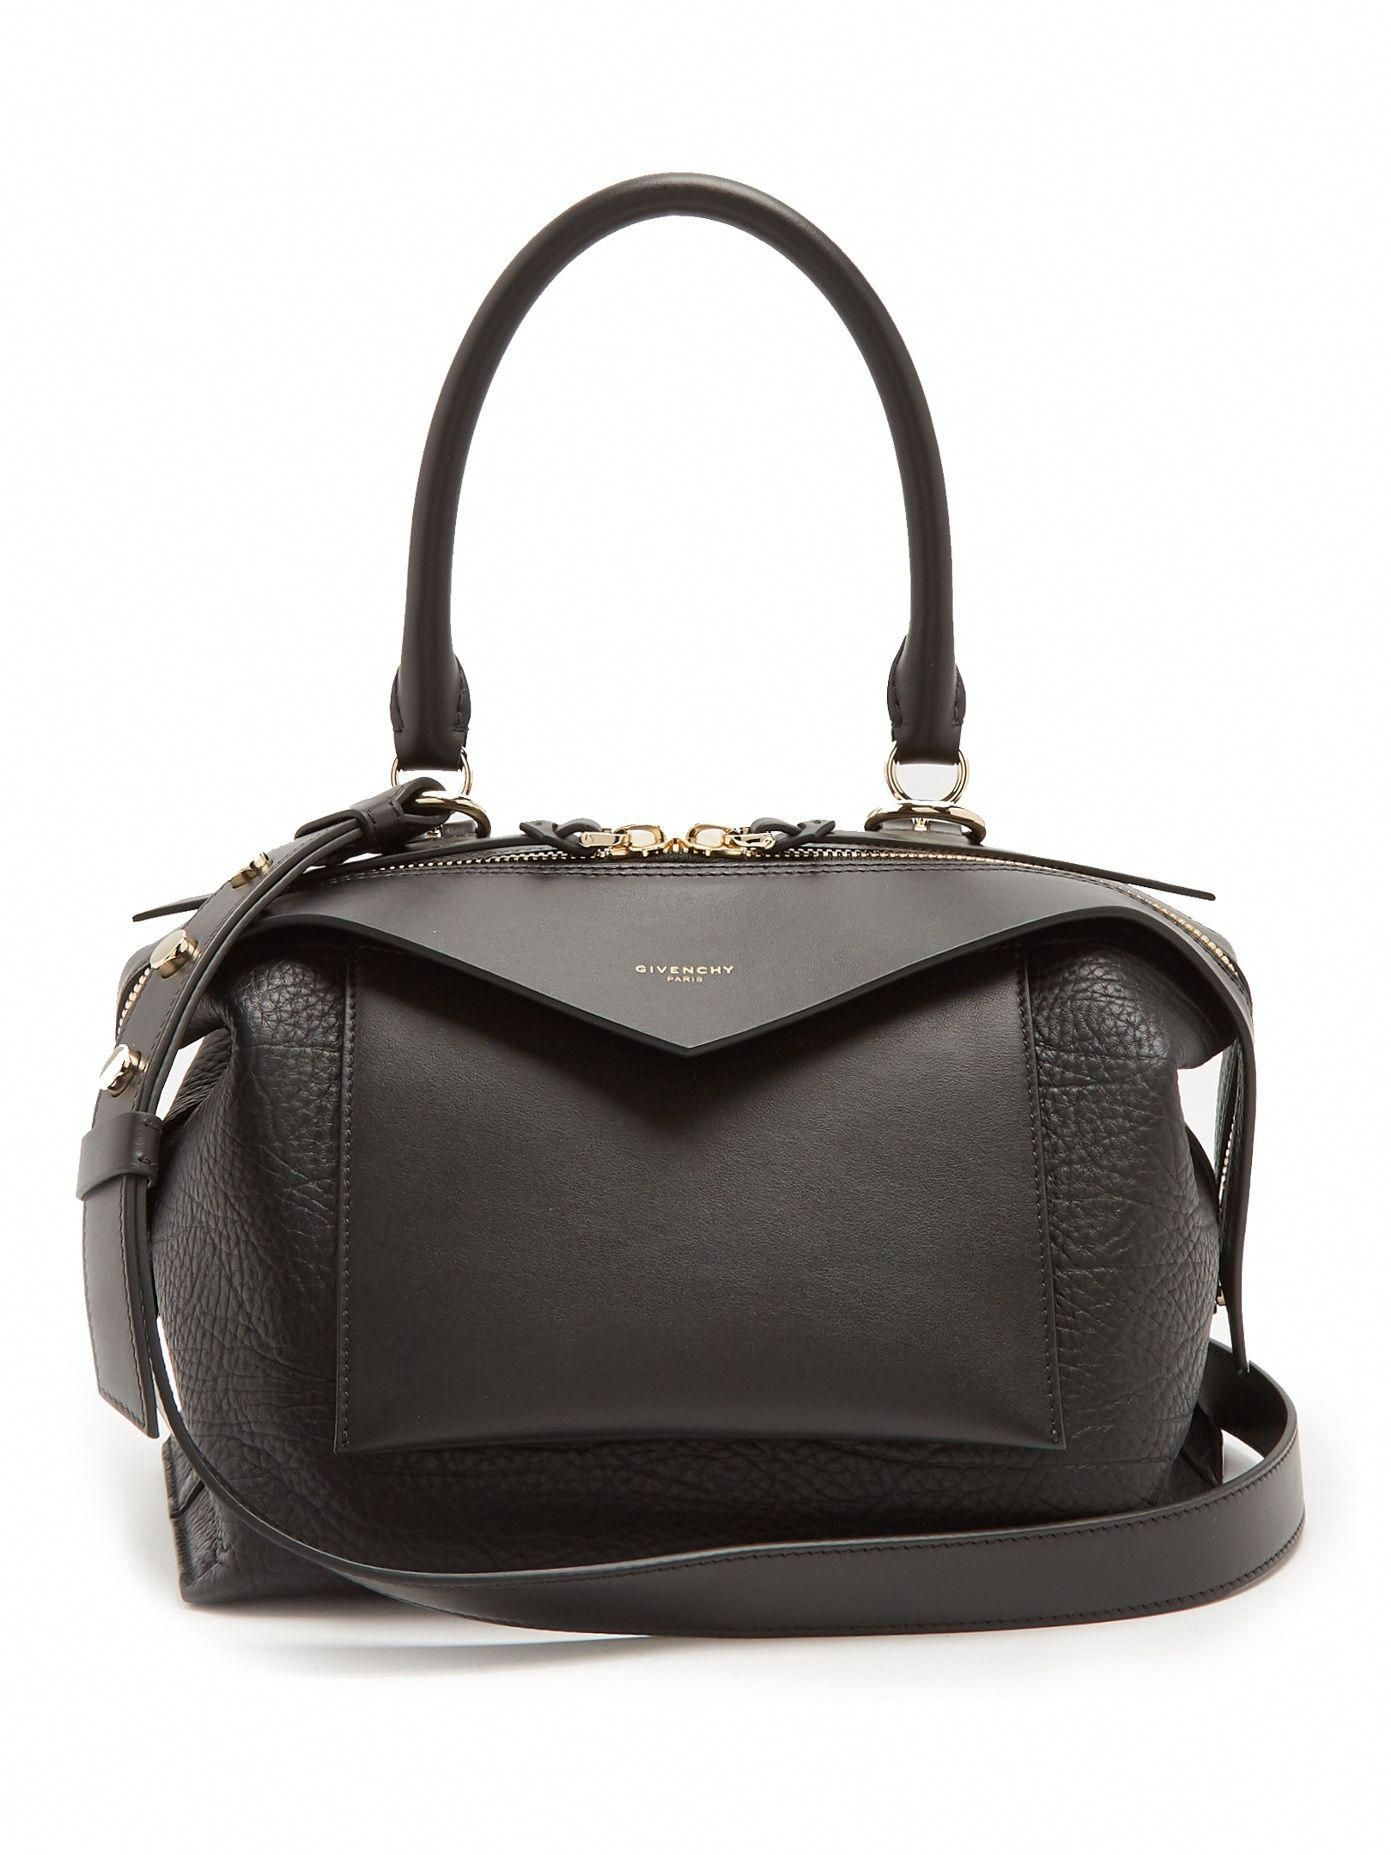 fd6c4dd53d02b ... leather handbags. GIVENCHY .  givenchy  bags  shoulder bags  hand bags   leather    Designerhandbags